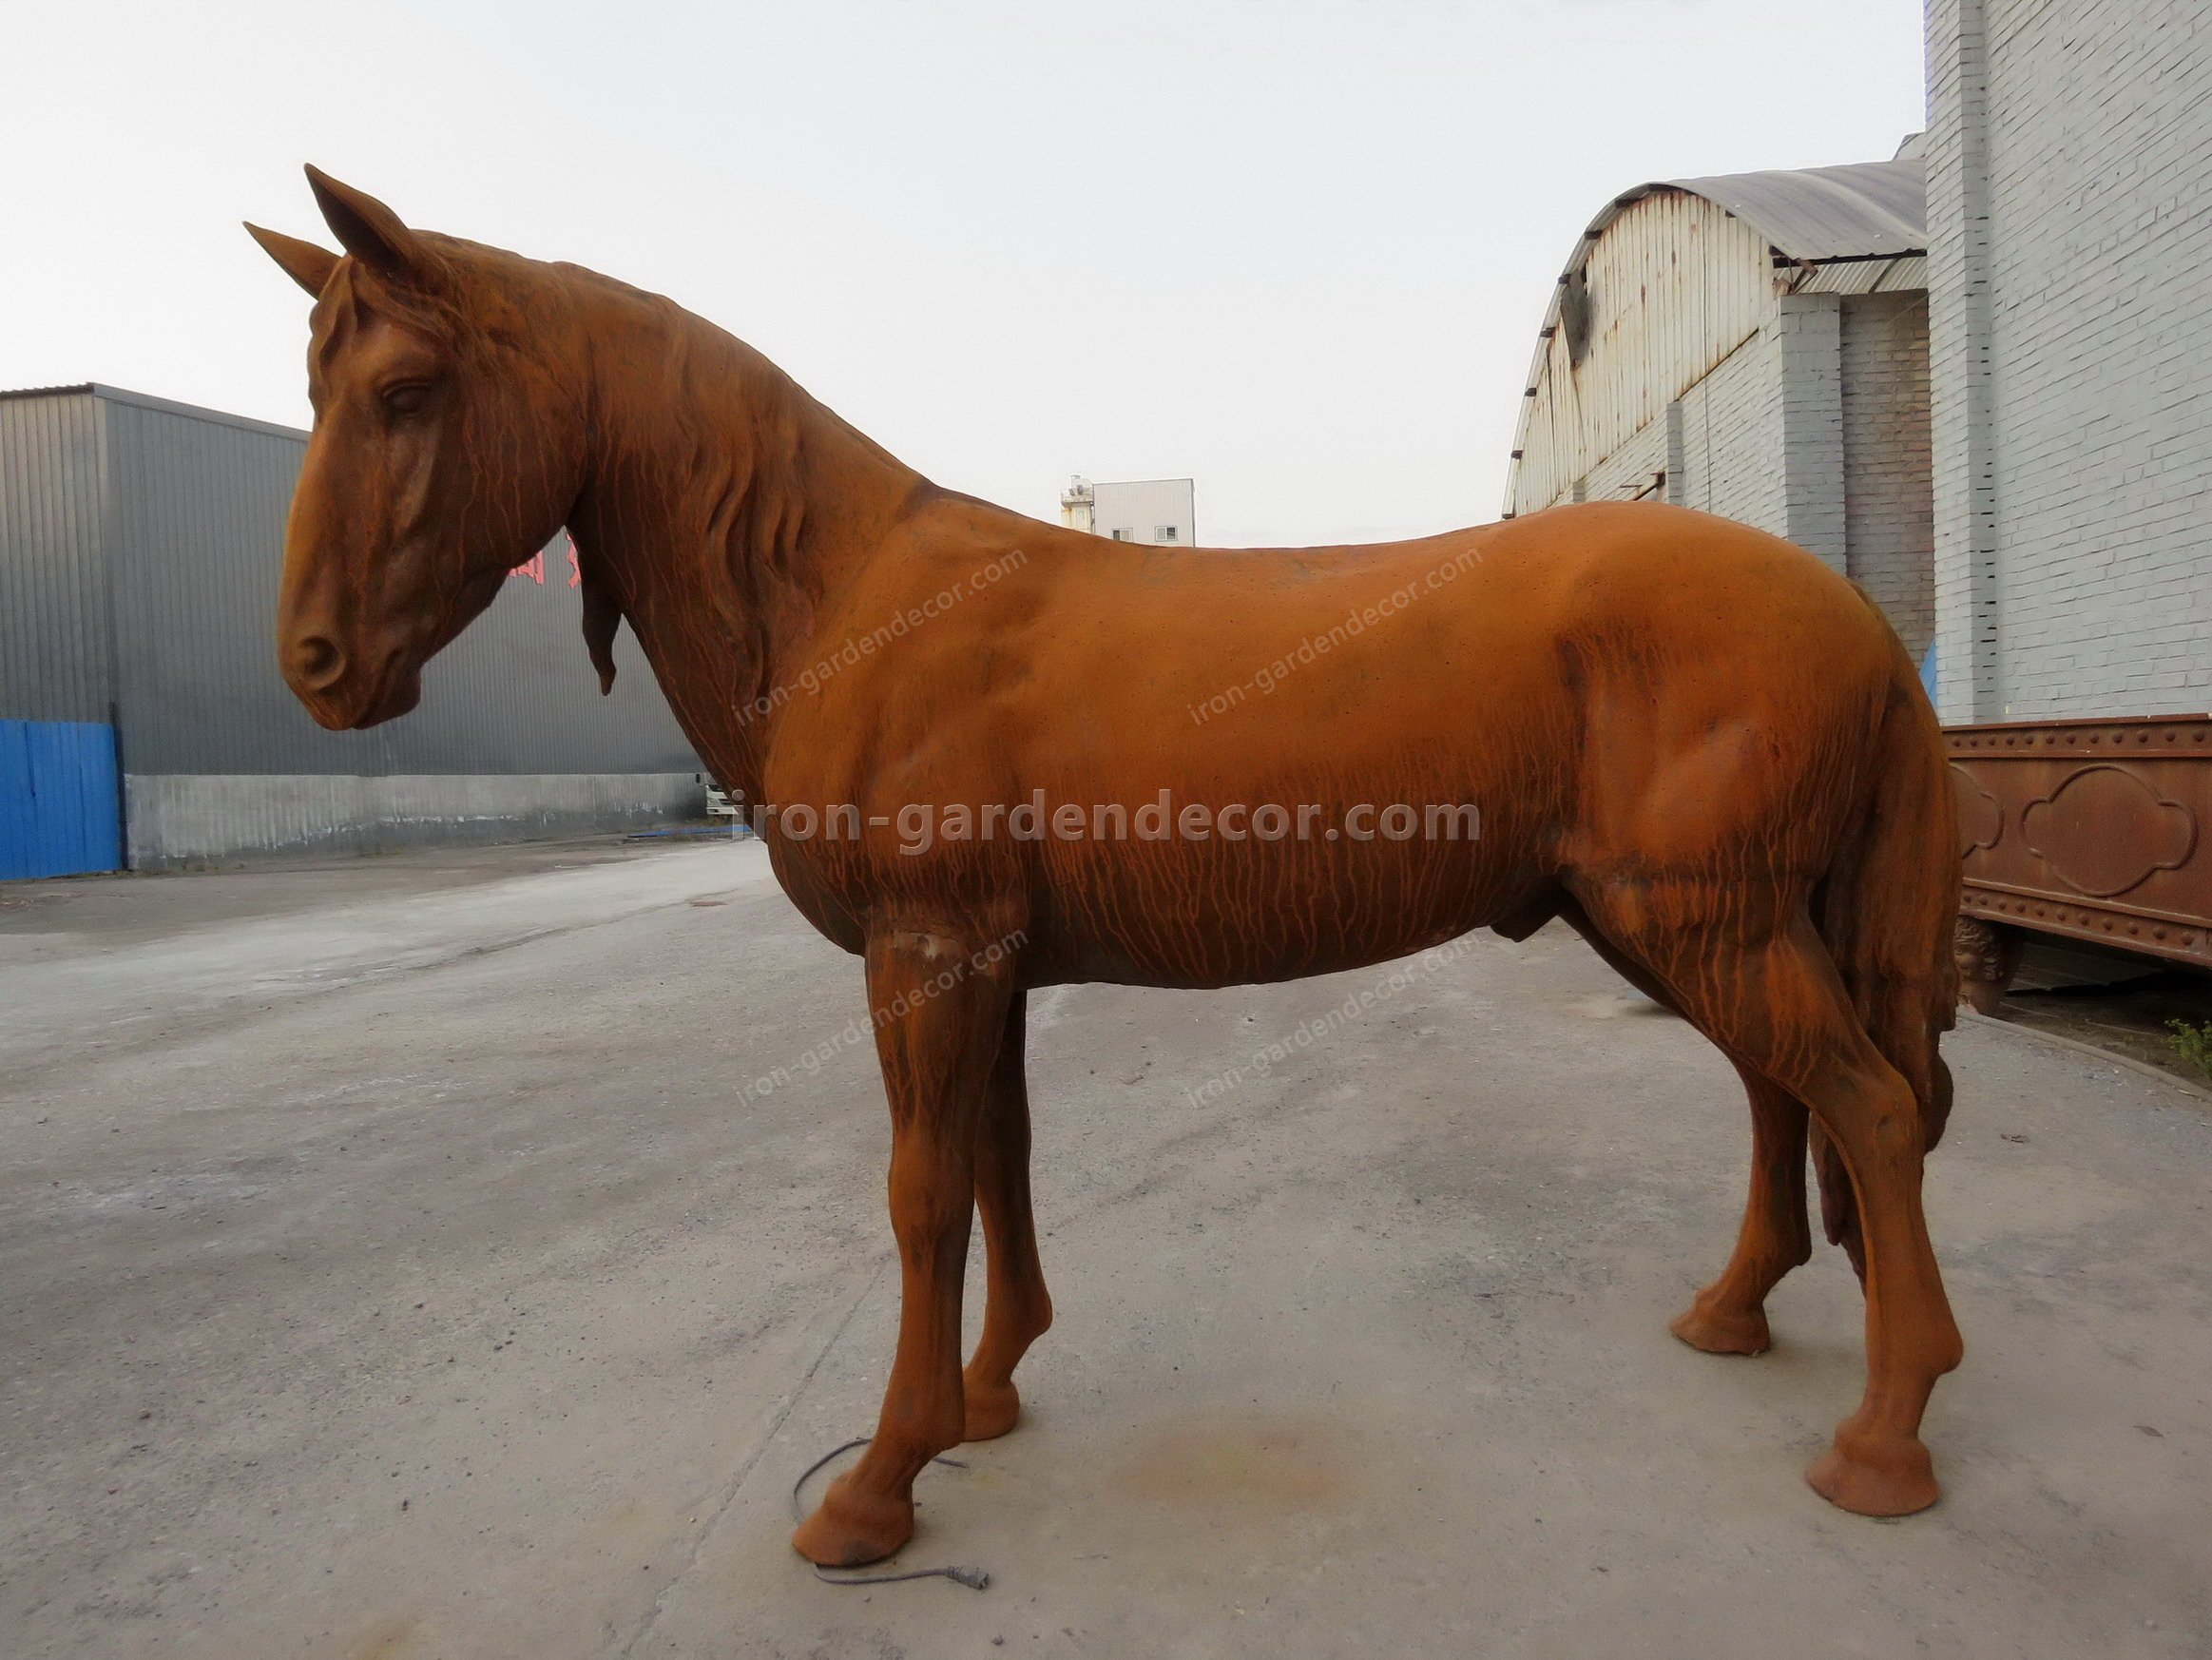 normal size cast iron animal of horse garden animal, large horse animal-SS6027 (6)